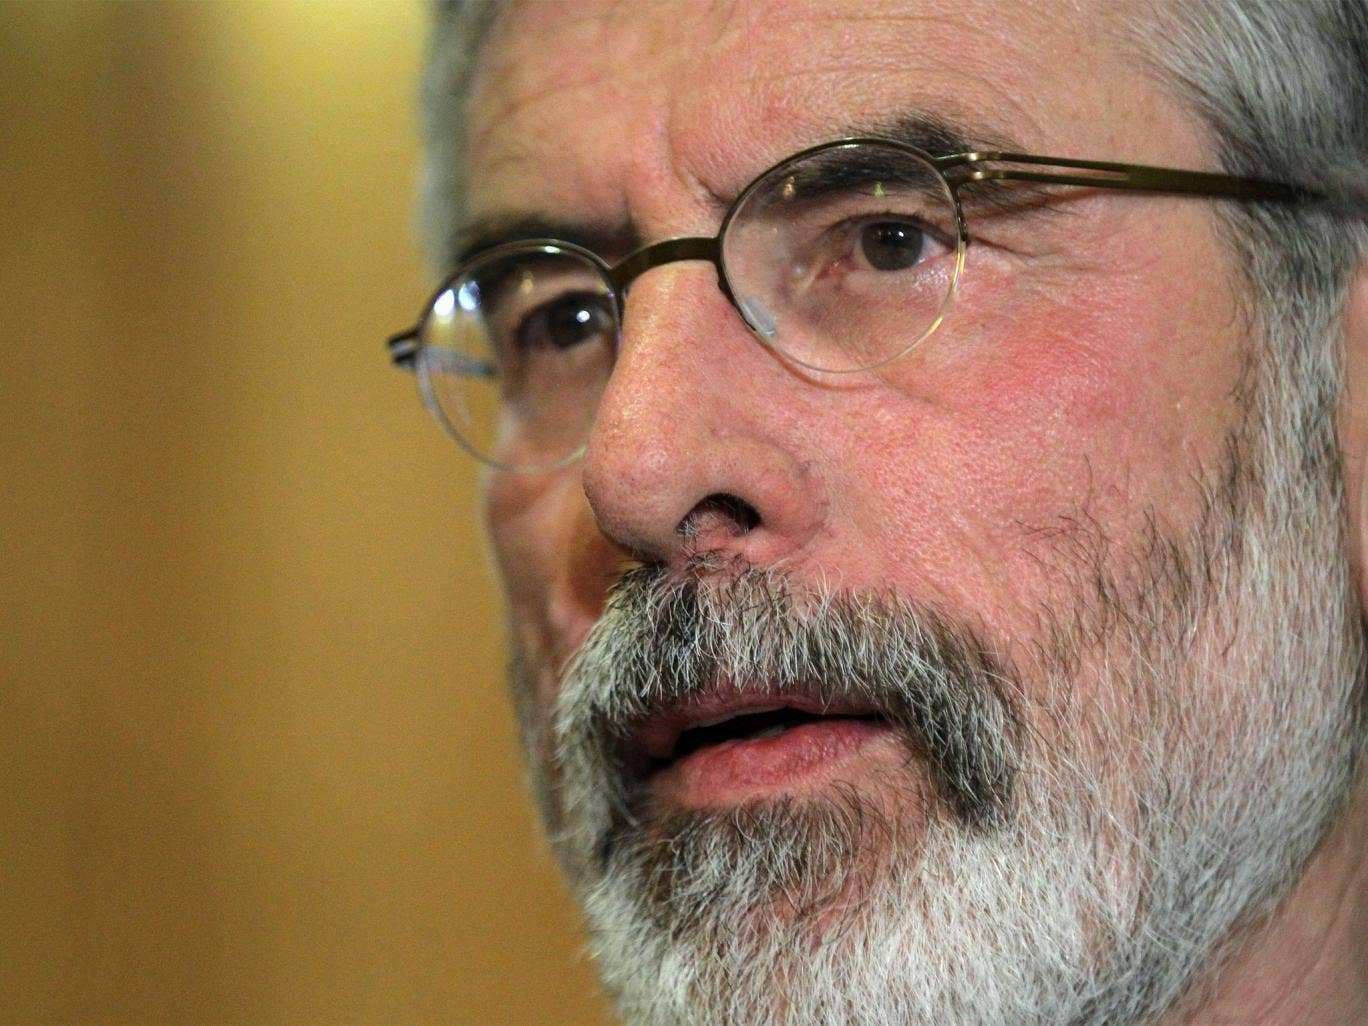 Gerry Adams has welcomed the discovery and called for anyone with information on the Disappeared to inform authorities